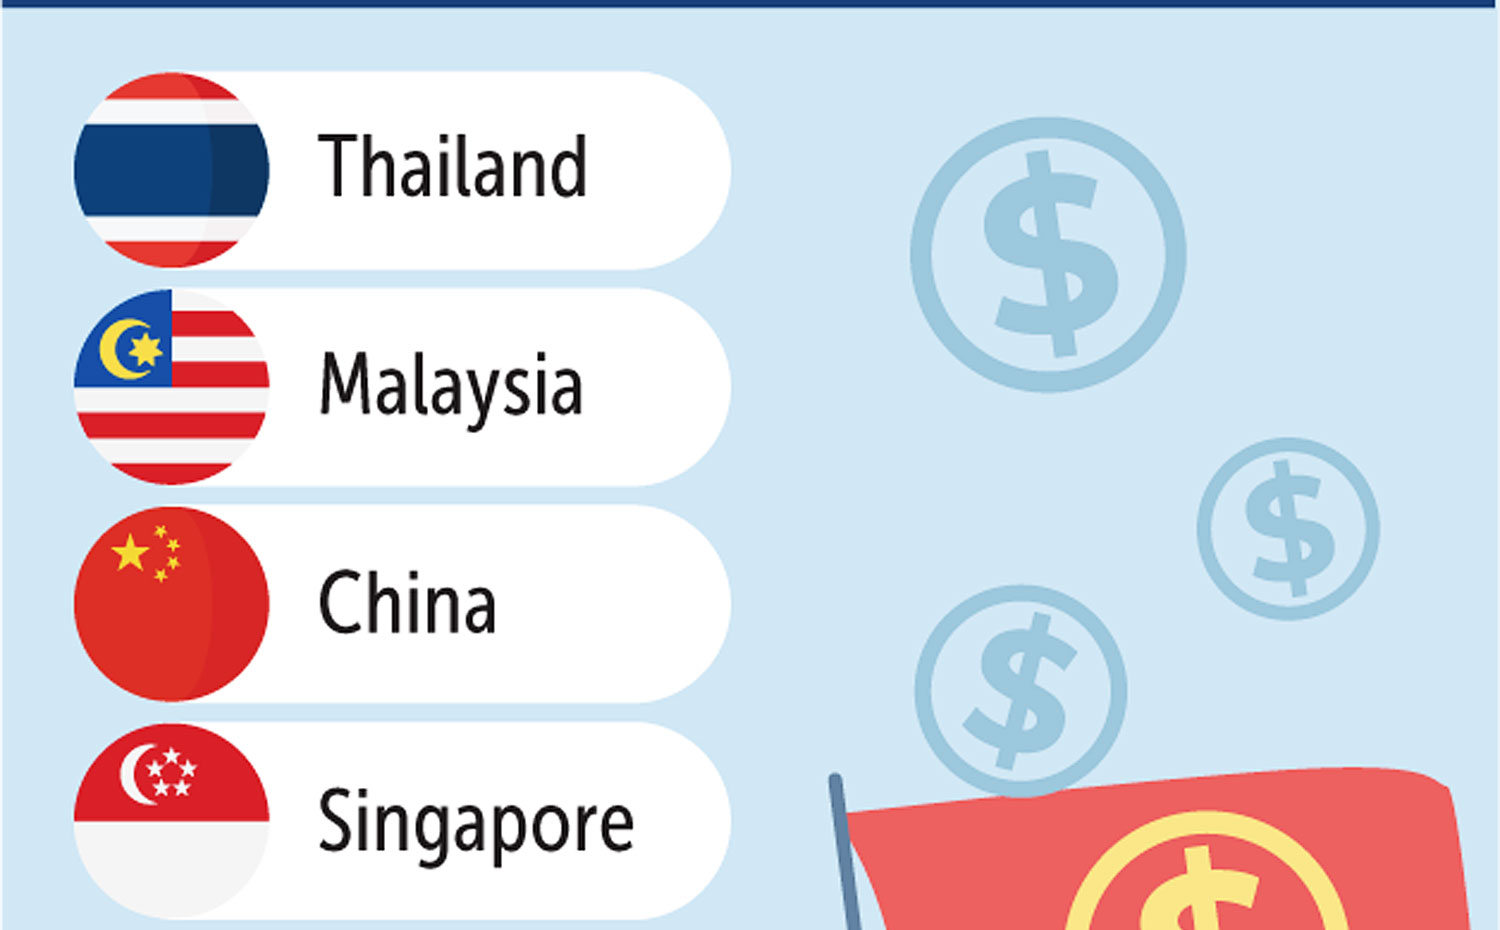 Thailand named best for business